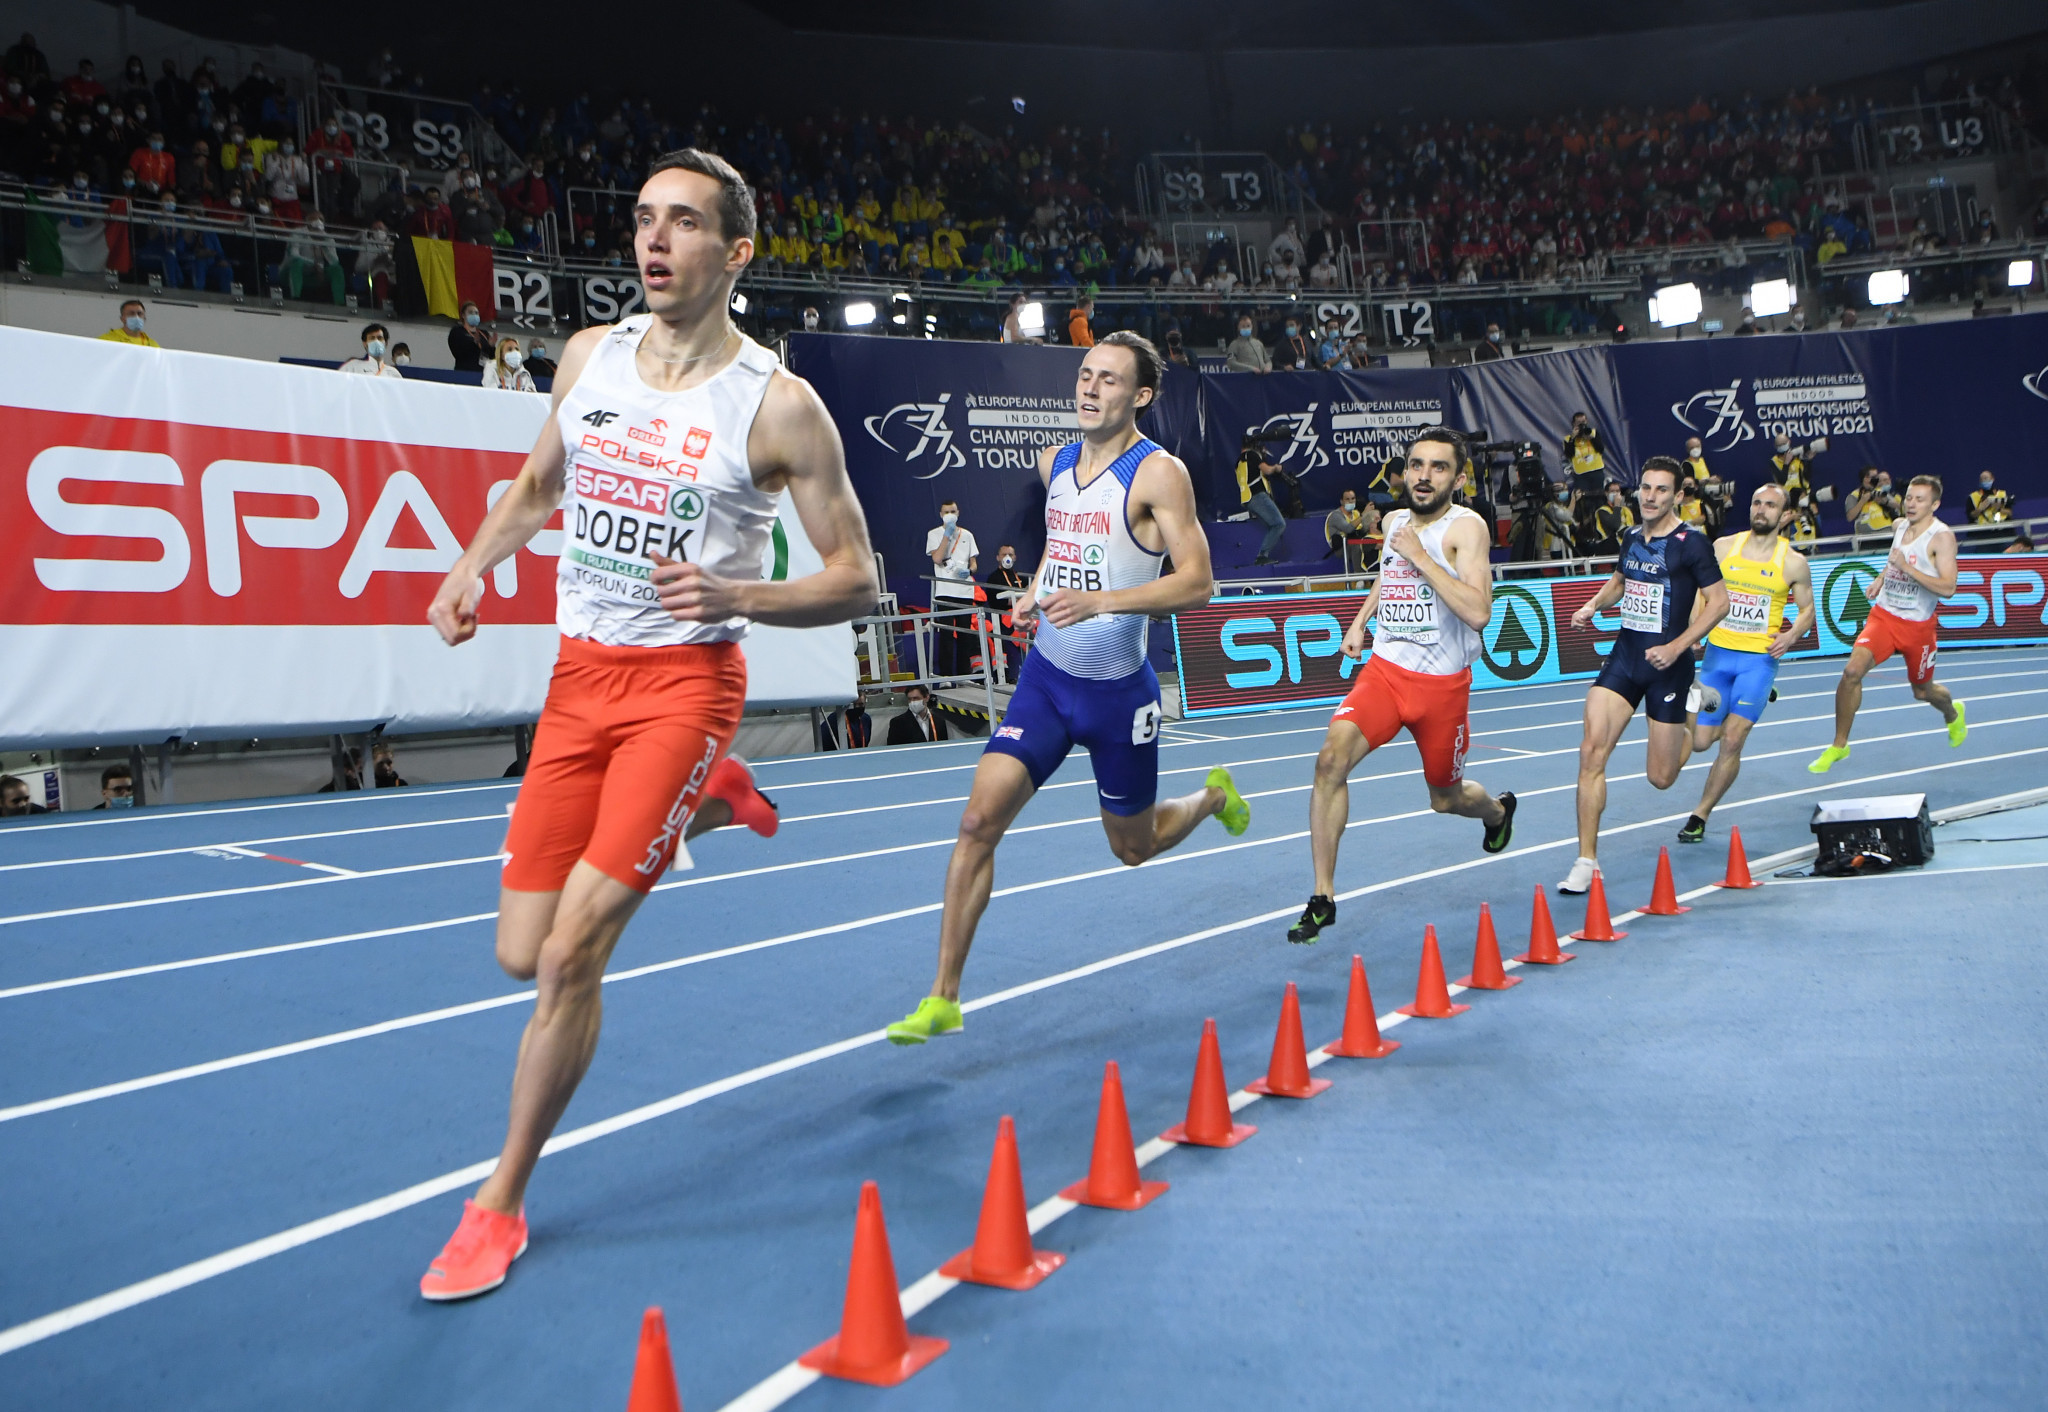 Members of the EOC visited Torun in Poland for the recent European Athletics Indoor Championships ©Getty Images